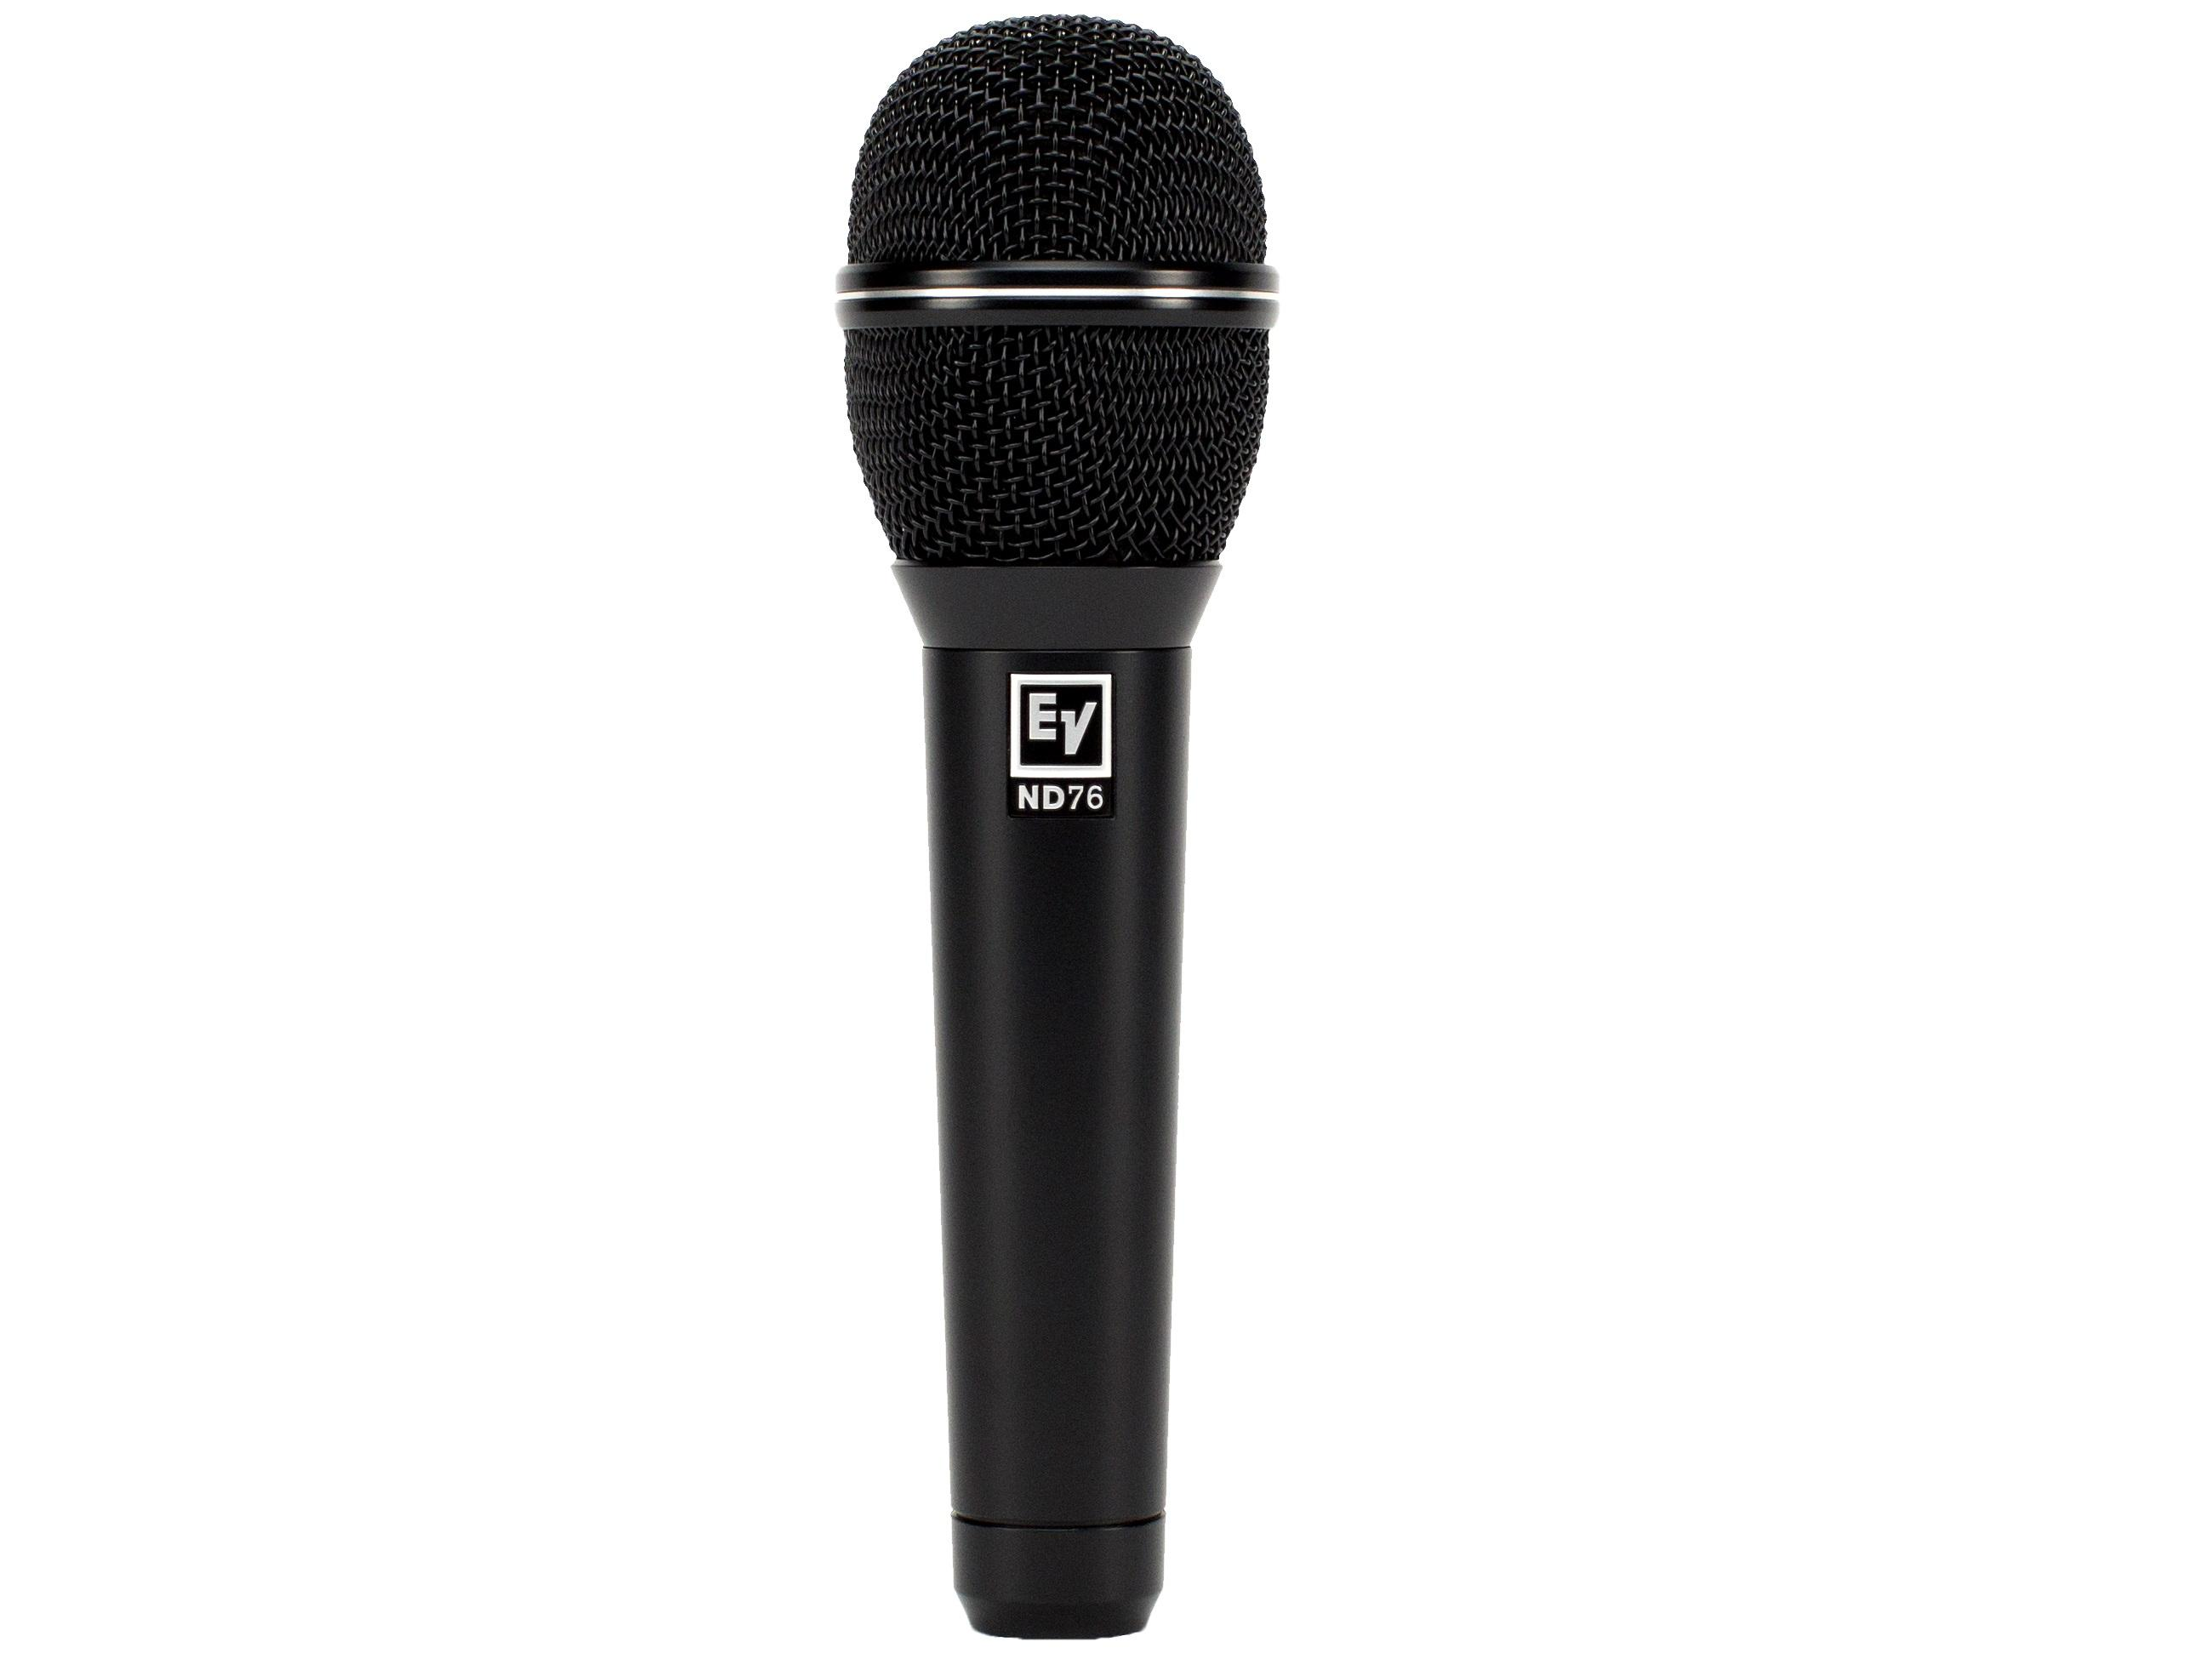 Electro-Voice ND76 Cardioid Dynamic Vocal Microphone